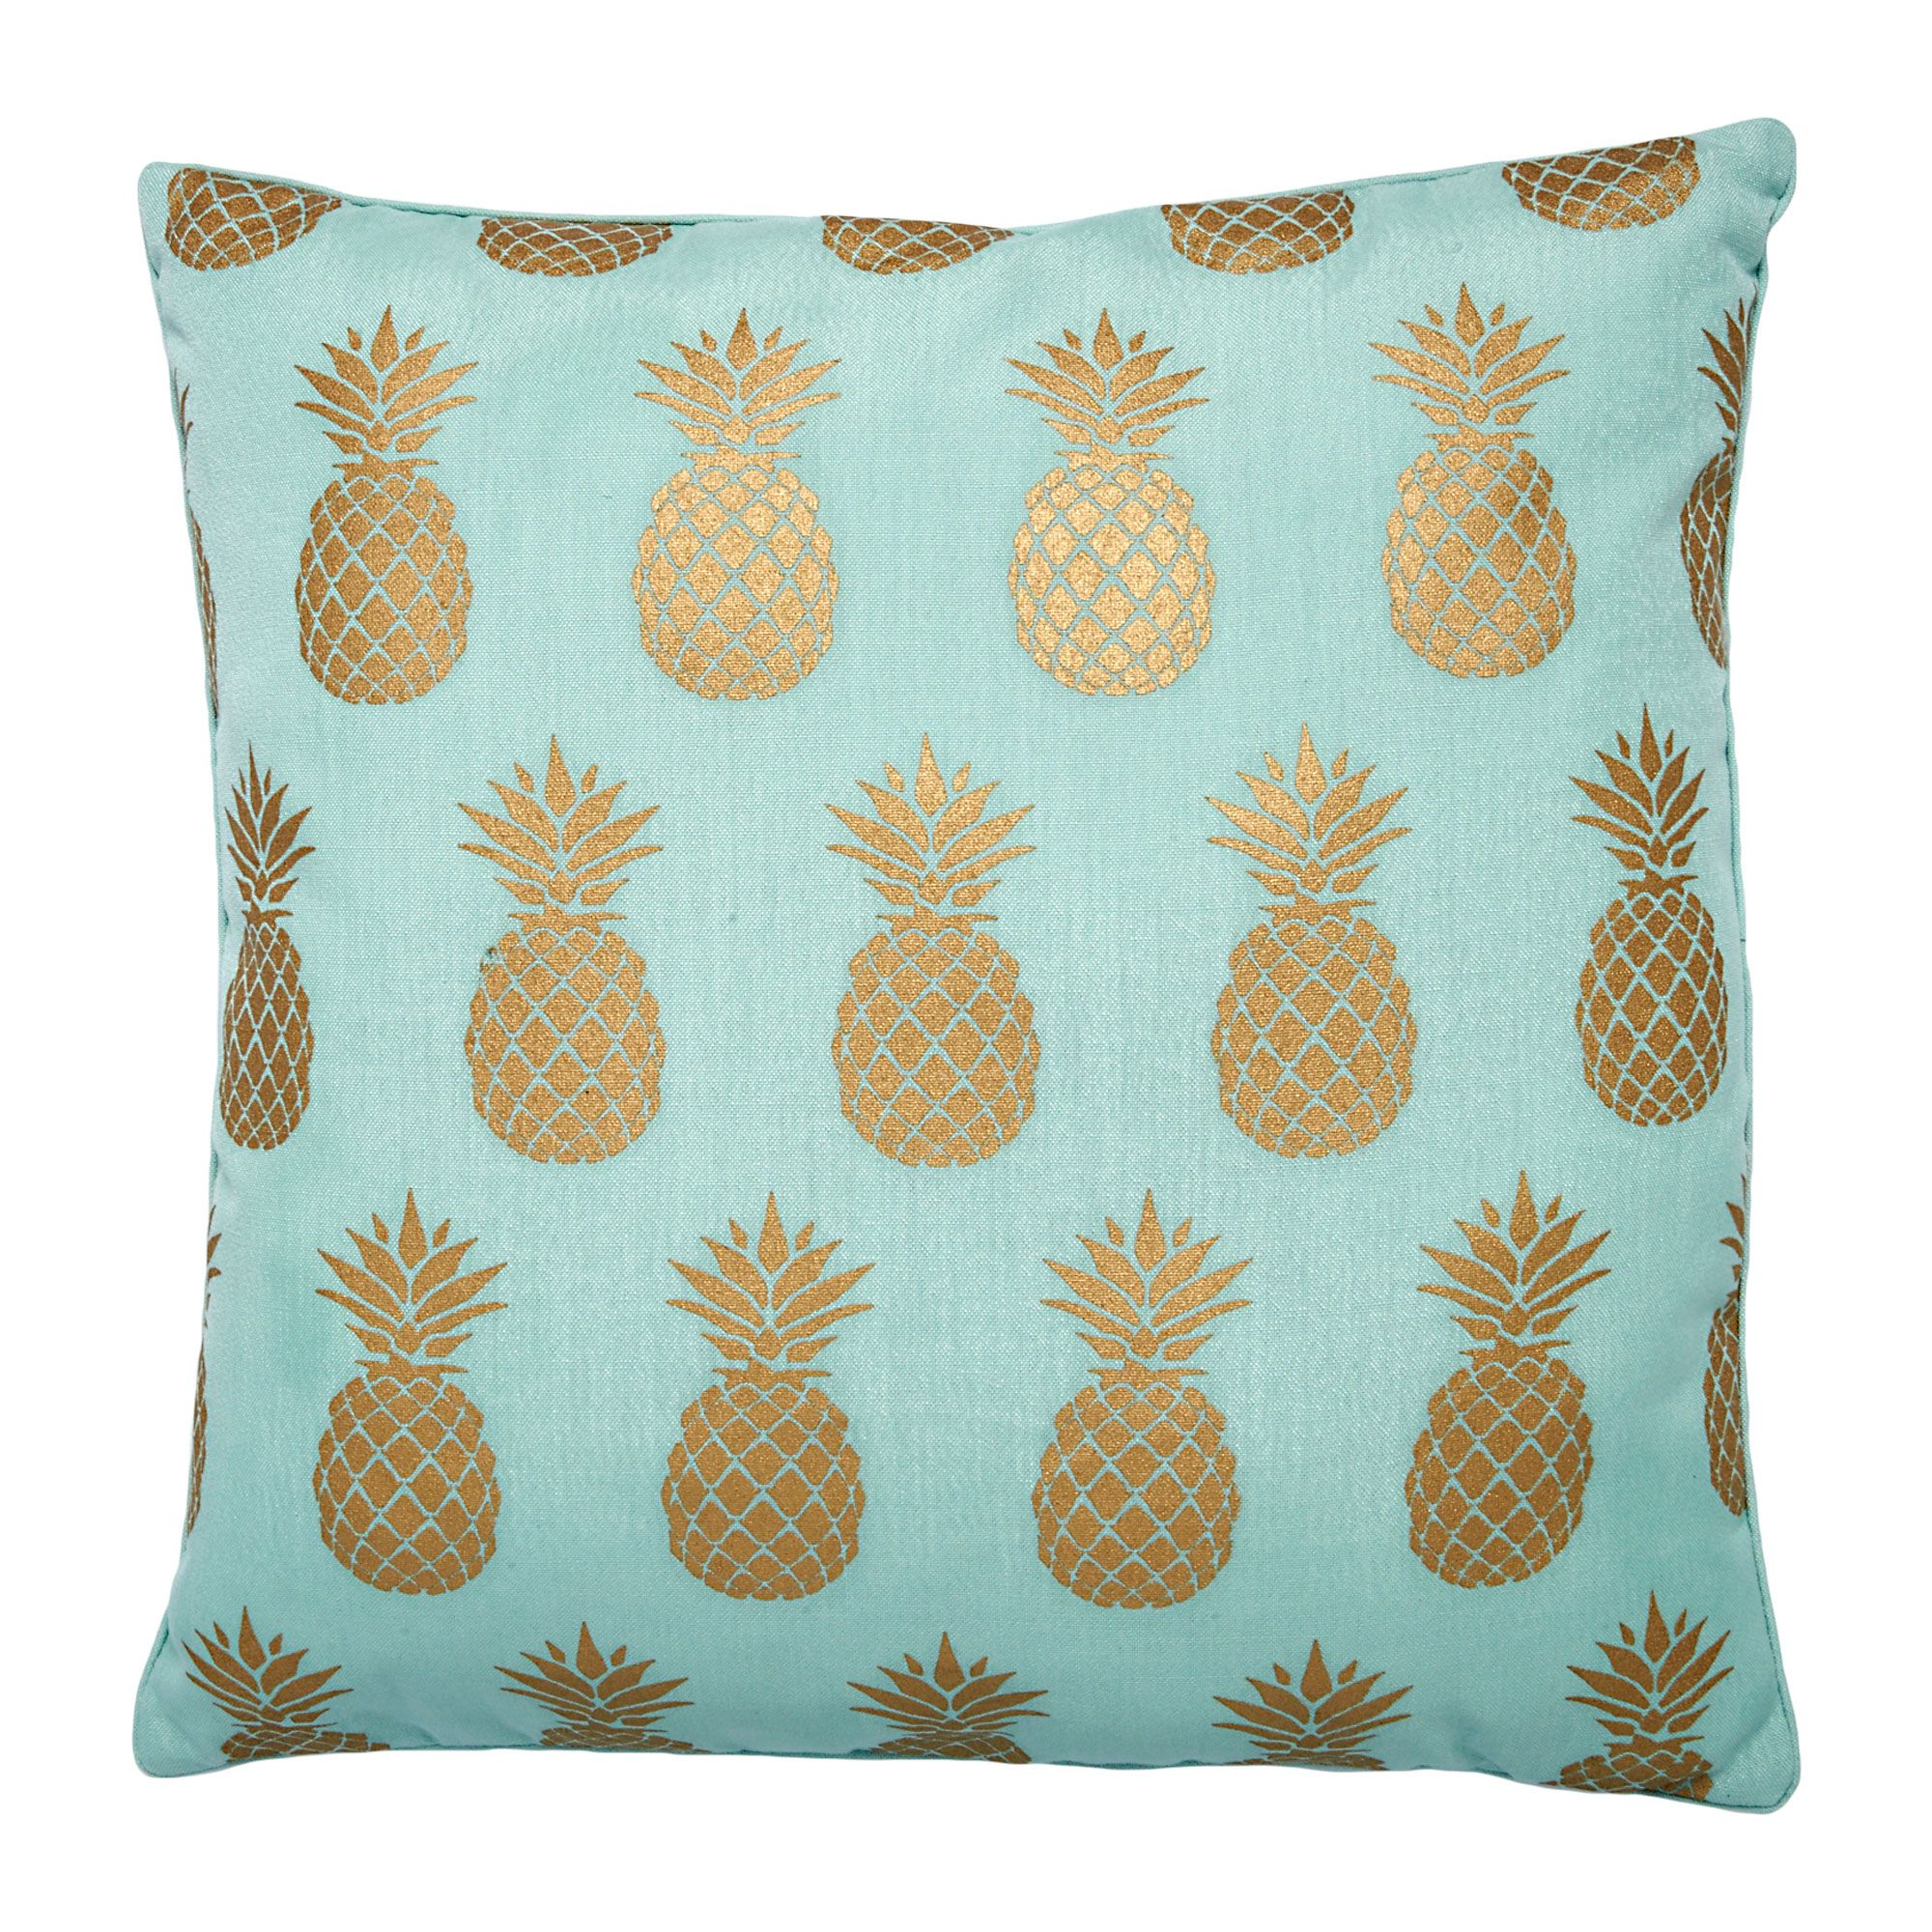 print cushion cushions pineapple alibaba decorative linen from sofa hawaiian covers aliexpress idealkea fruit on group com pillow custom throw sale suppliers products for coussin style reliable cases accent buy cojines